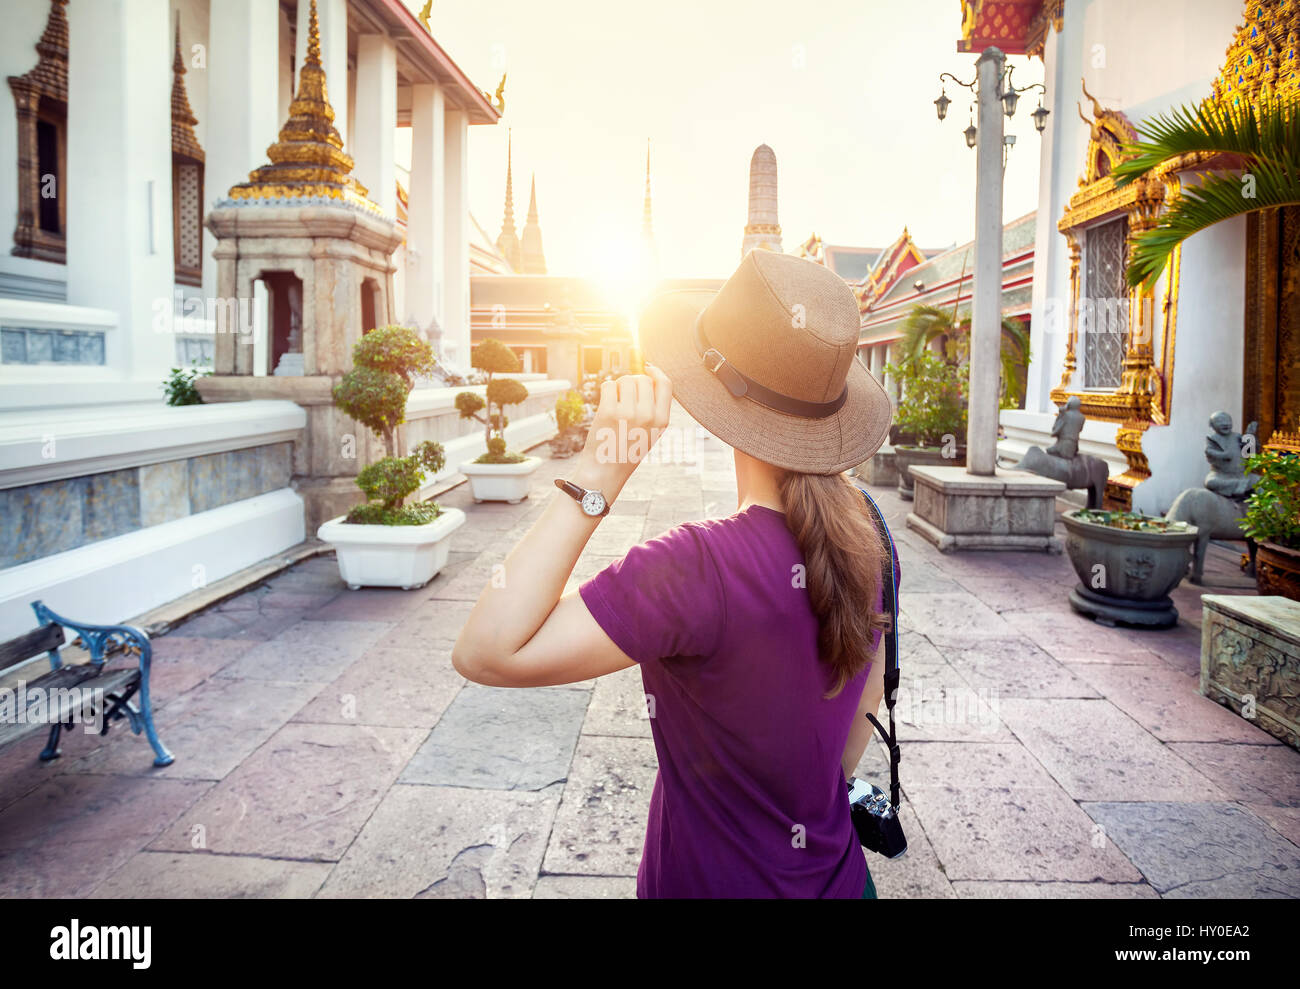 Tourist woman in the hat and purple t-shirt with photo camera in Wat Pho temple at sunset in Bangkok, Thailand - Stock Image